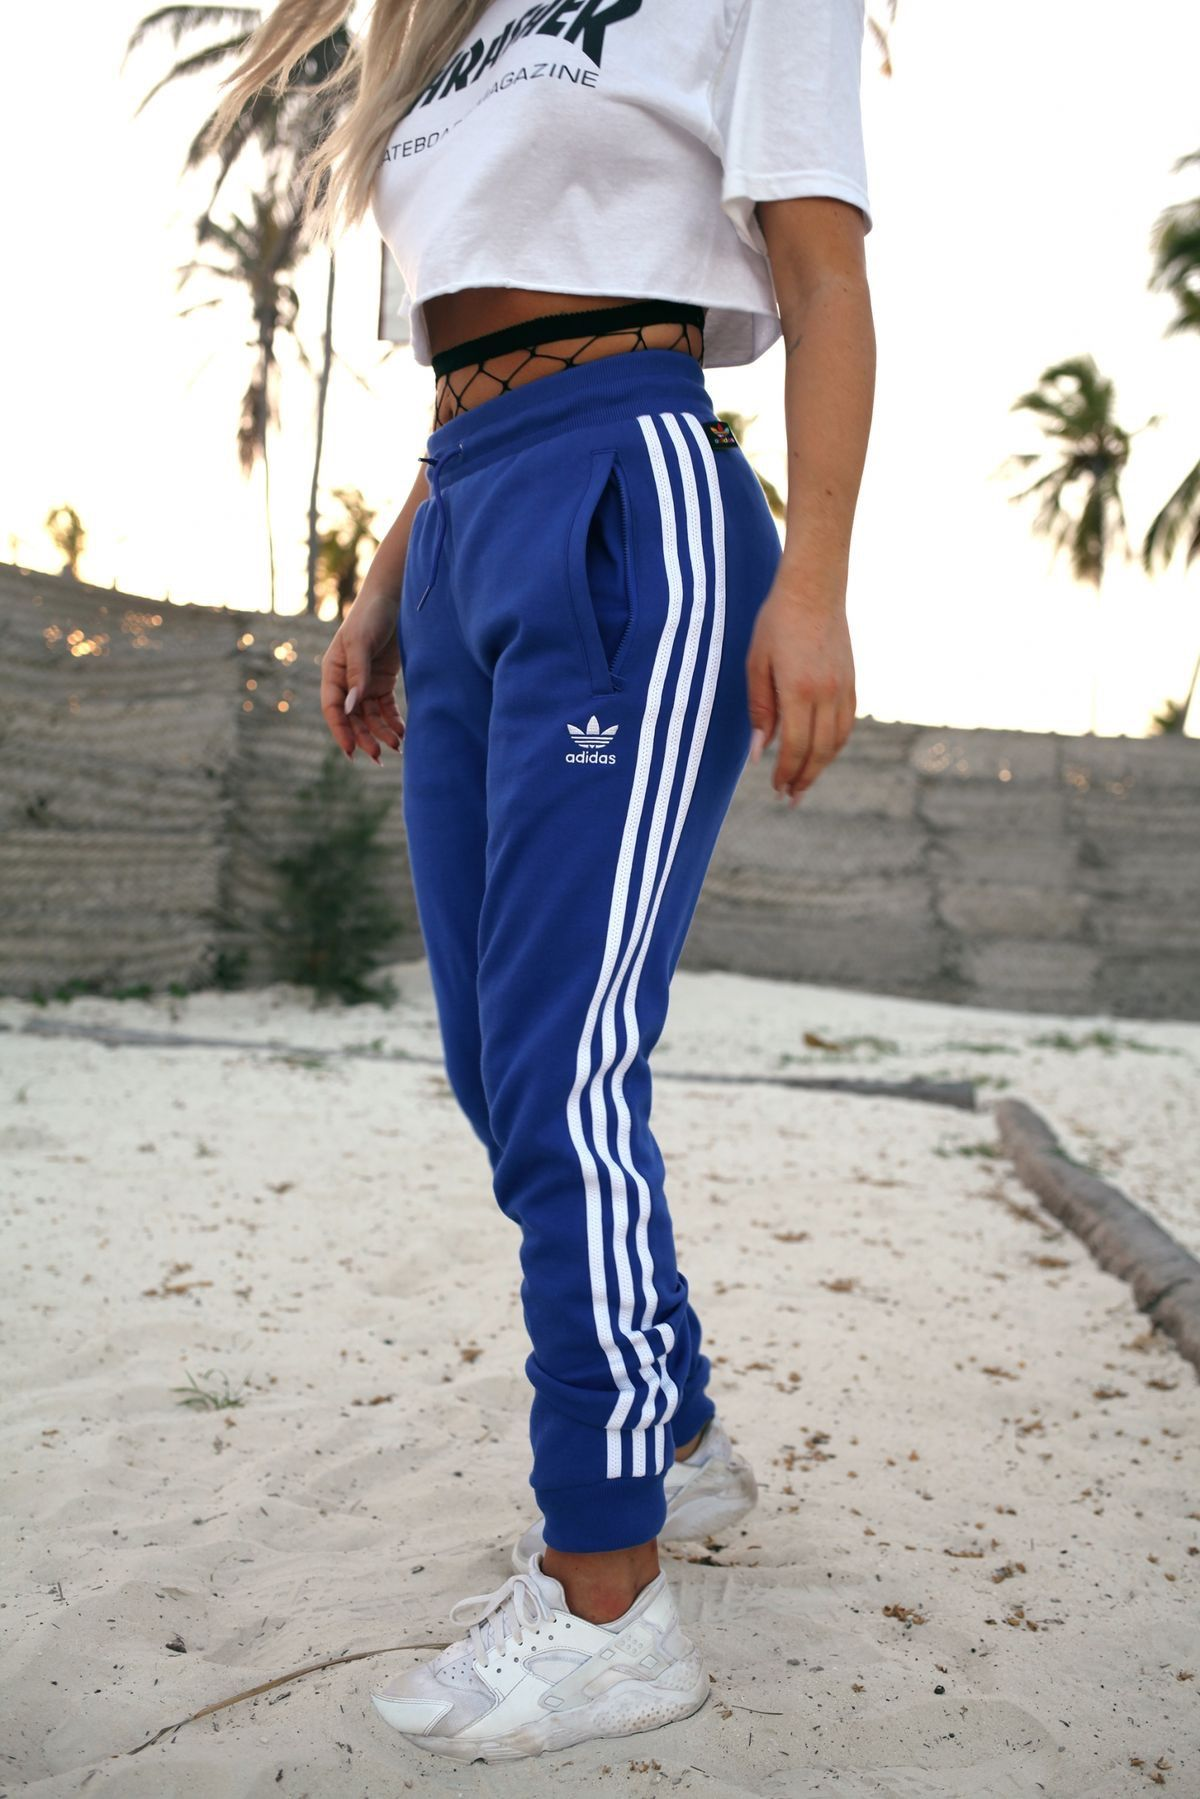 Agnesswalker Clothing In 2018 Pinterest Adidas Vetement